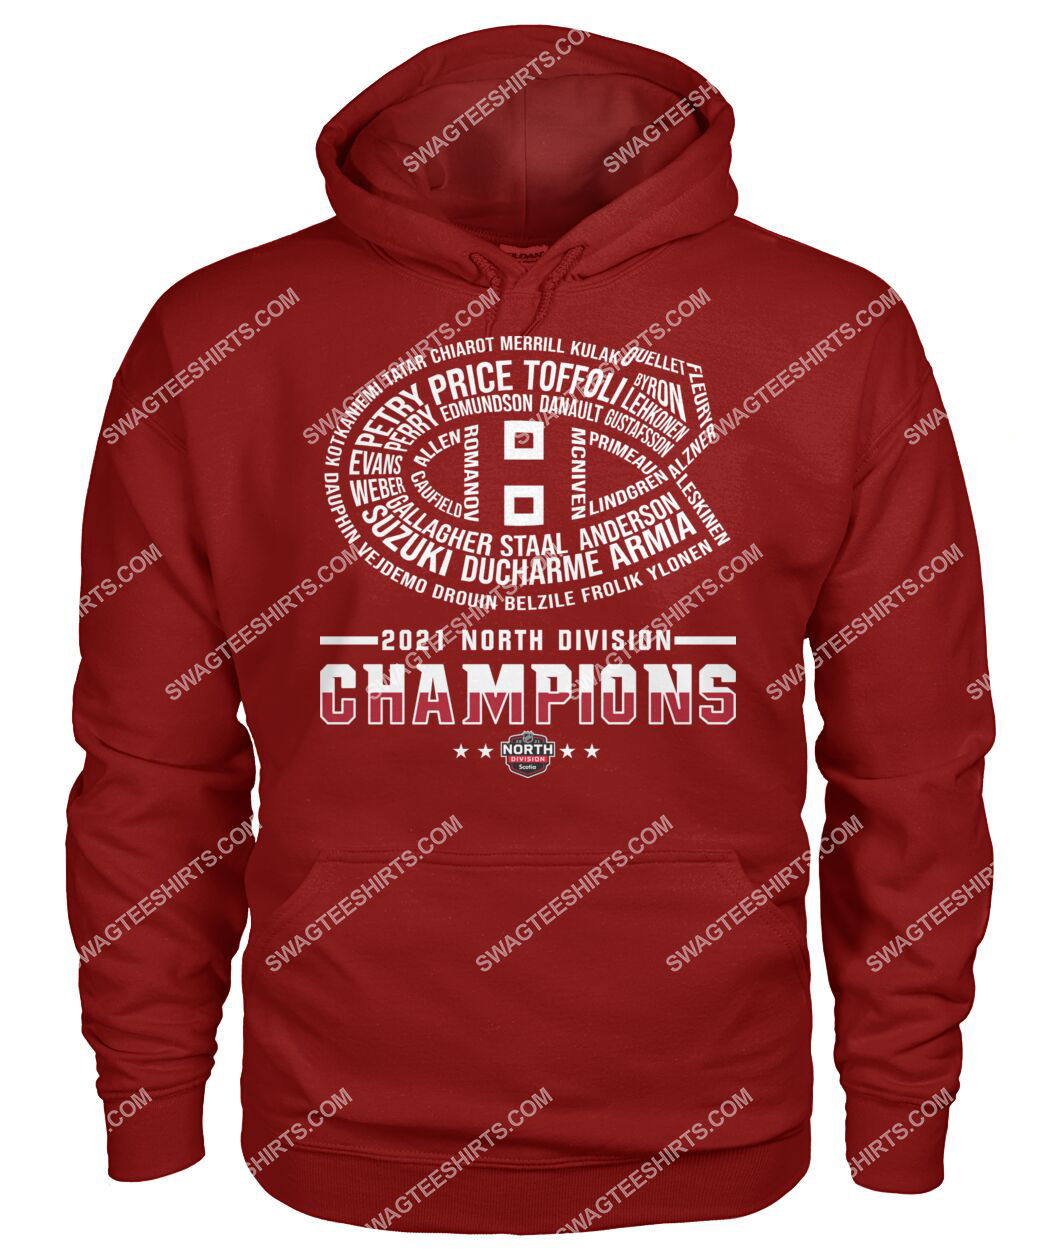 montreal canadiens 2021 north division champions hoodie 1